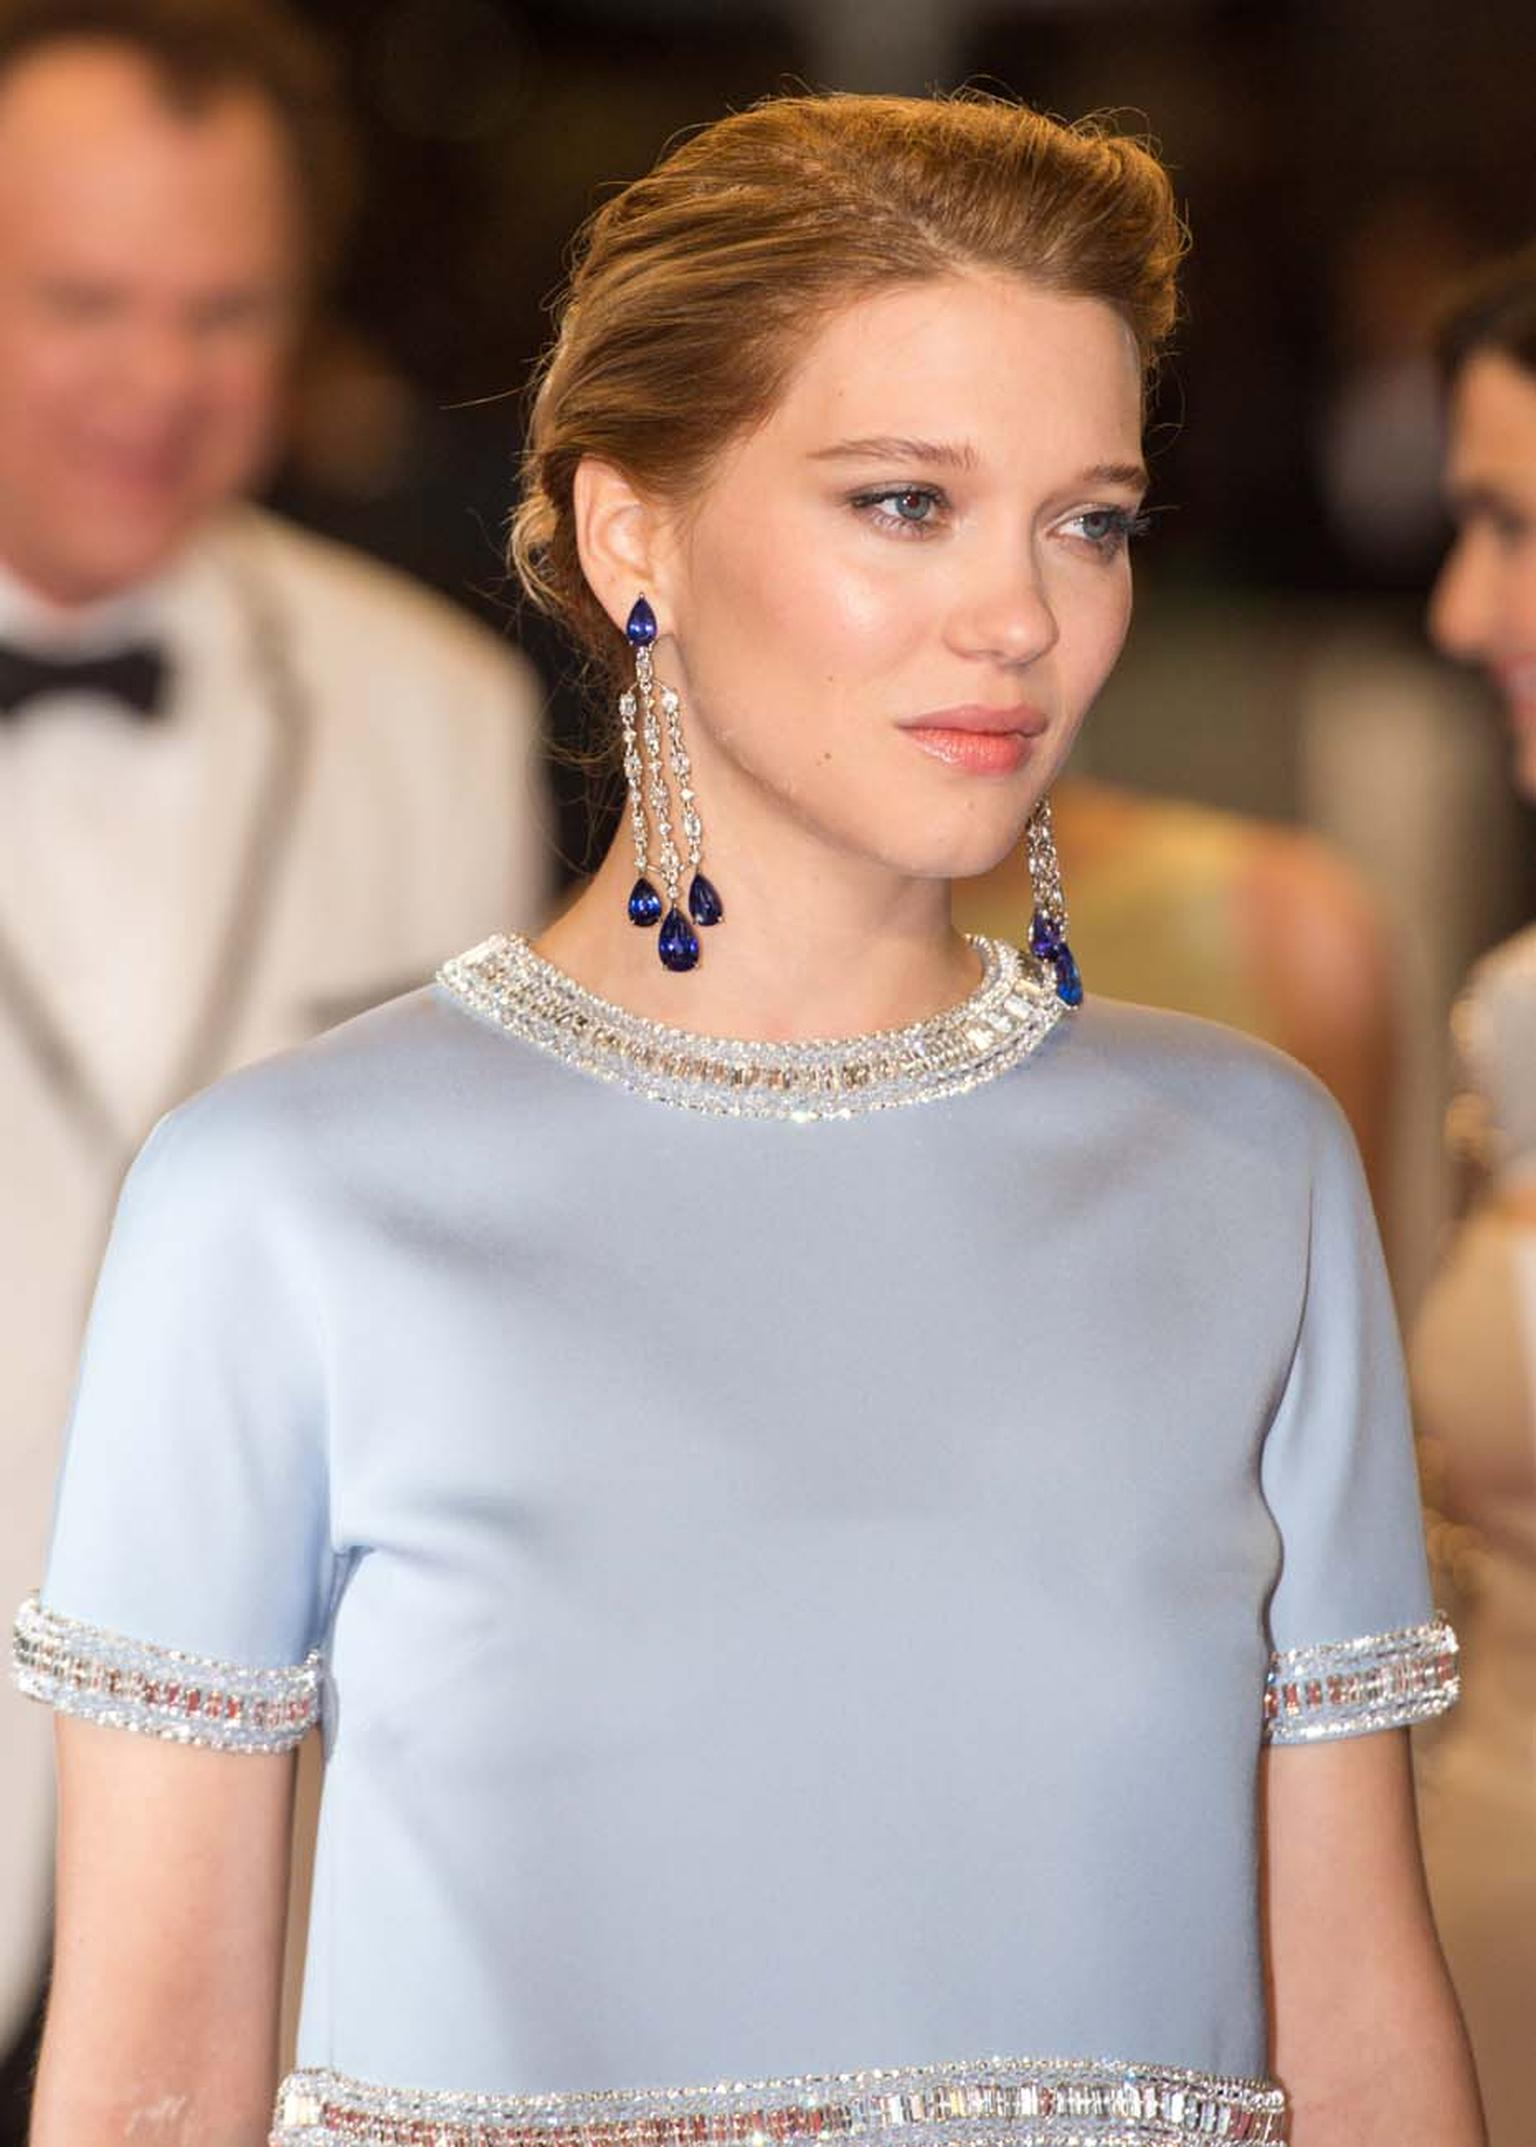 Léa Seydoux in Chopard jewellery